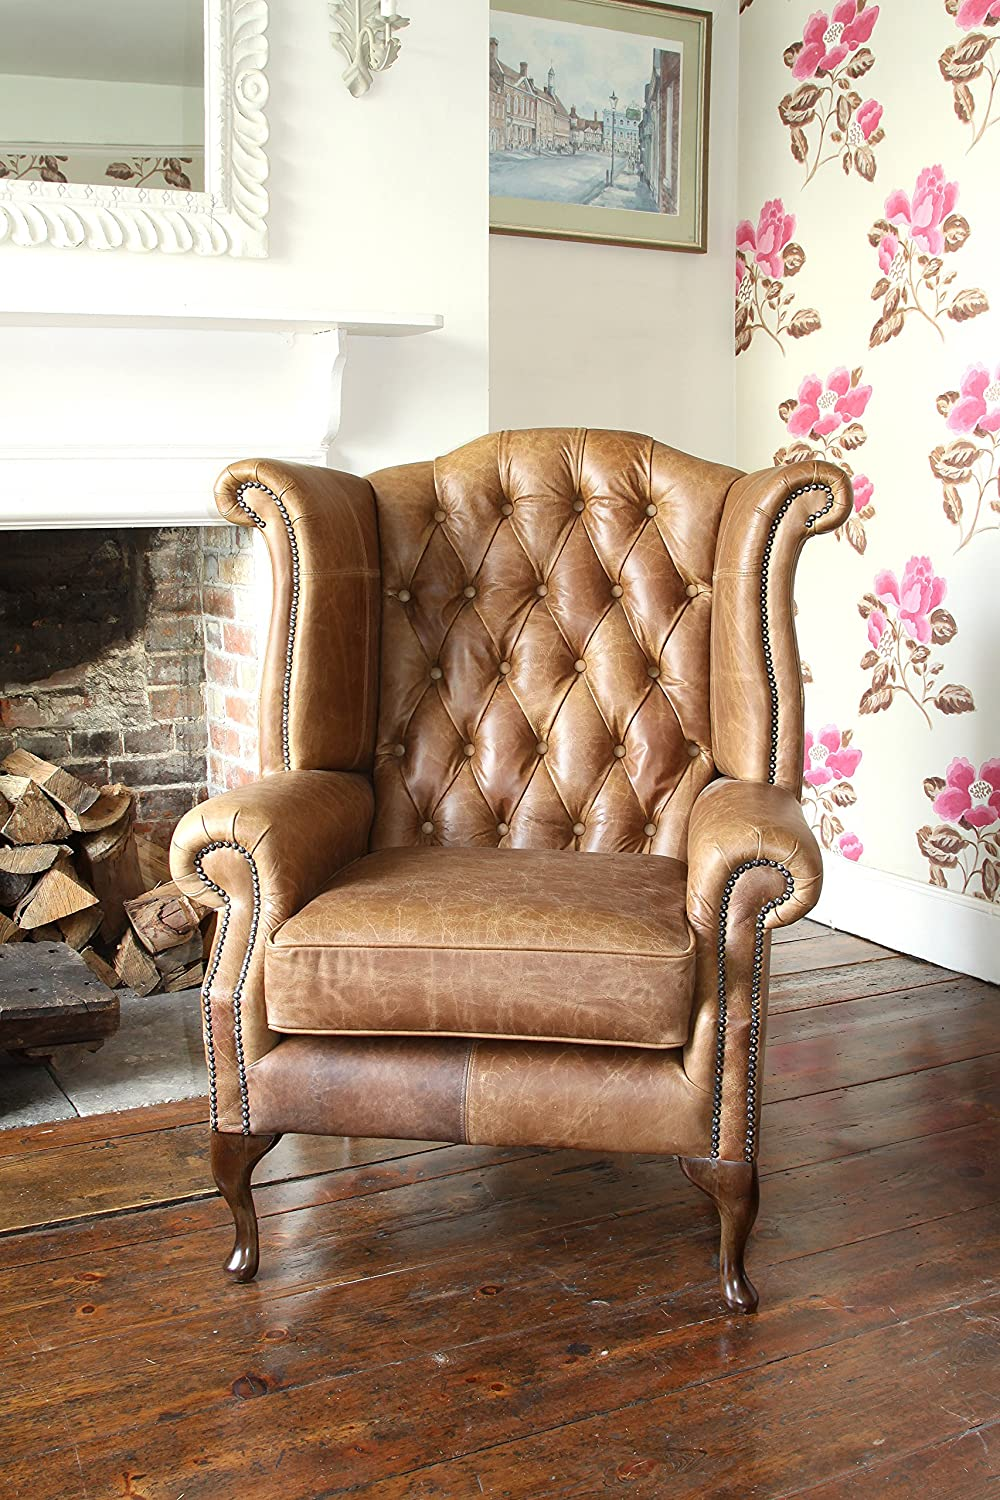 Handmade Chesterfield Queen Anne High Back Wing Chair in Vintage